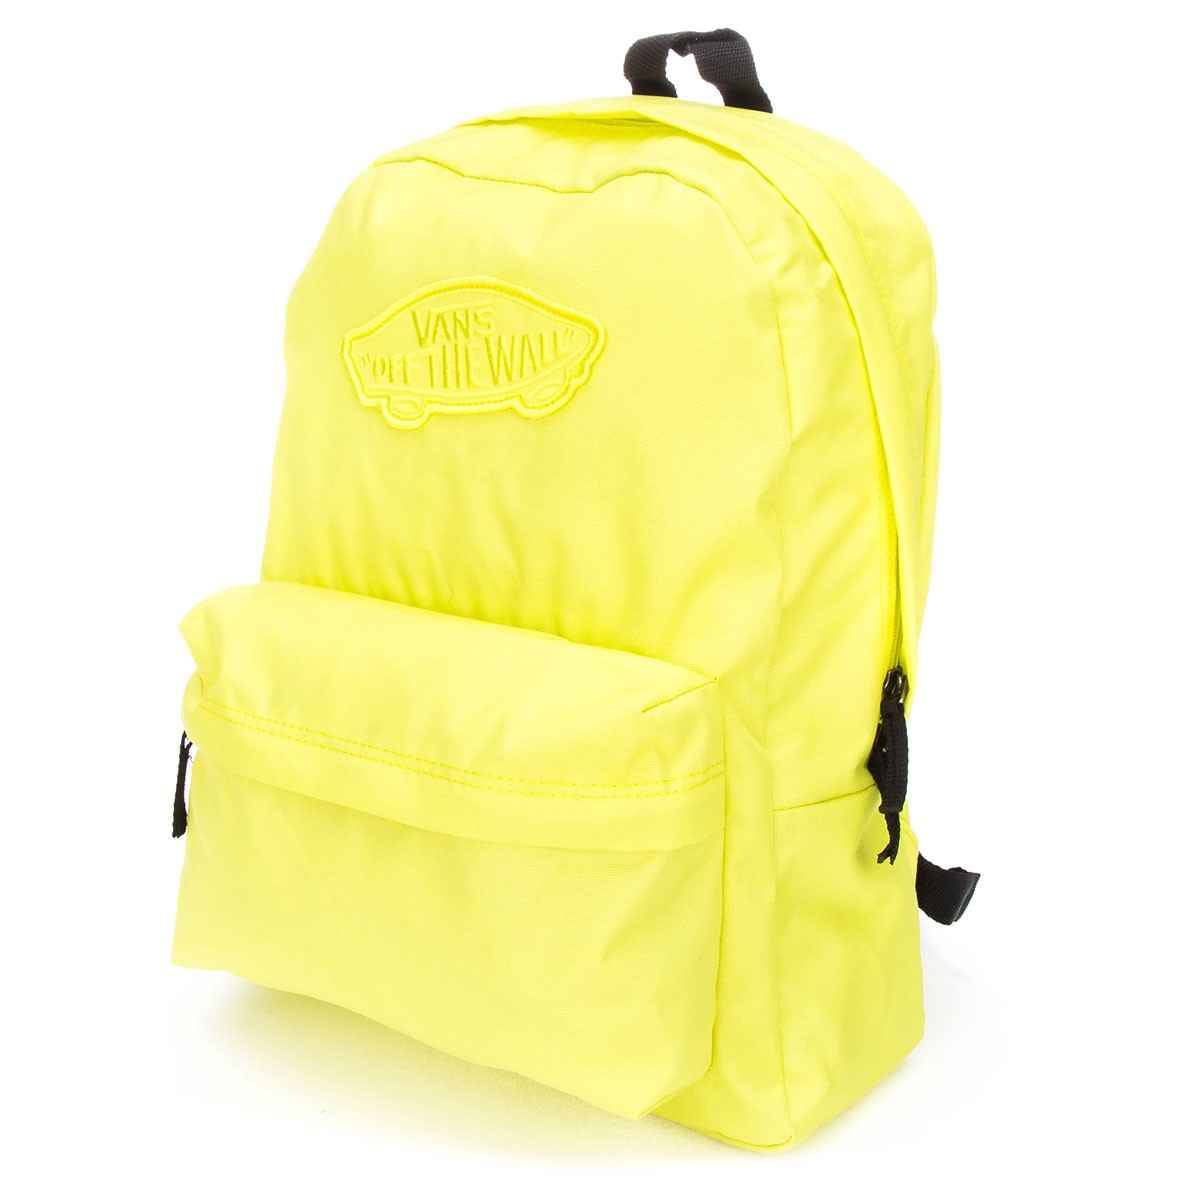 9d2d4e1375 Vans Sporty Realm Backpack Yellow